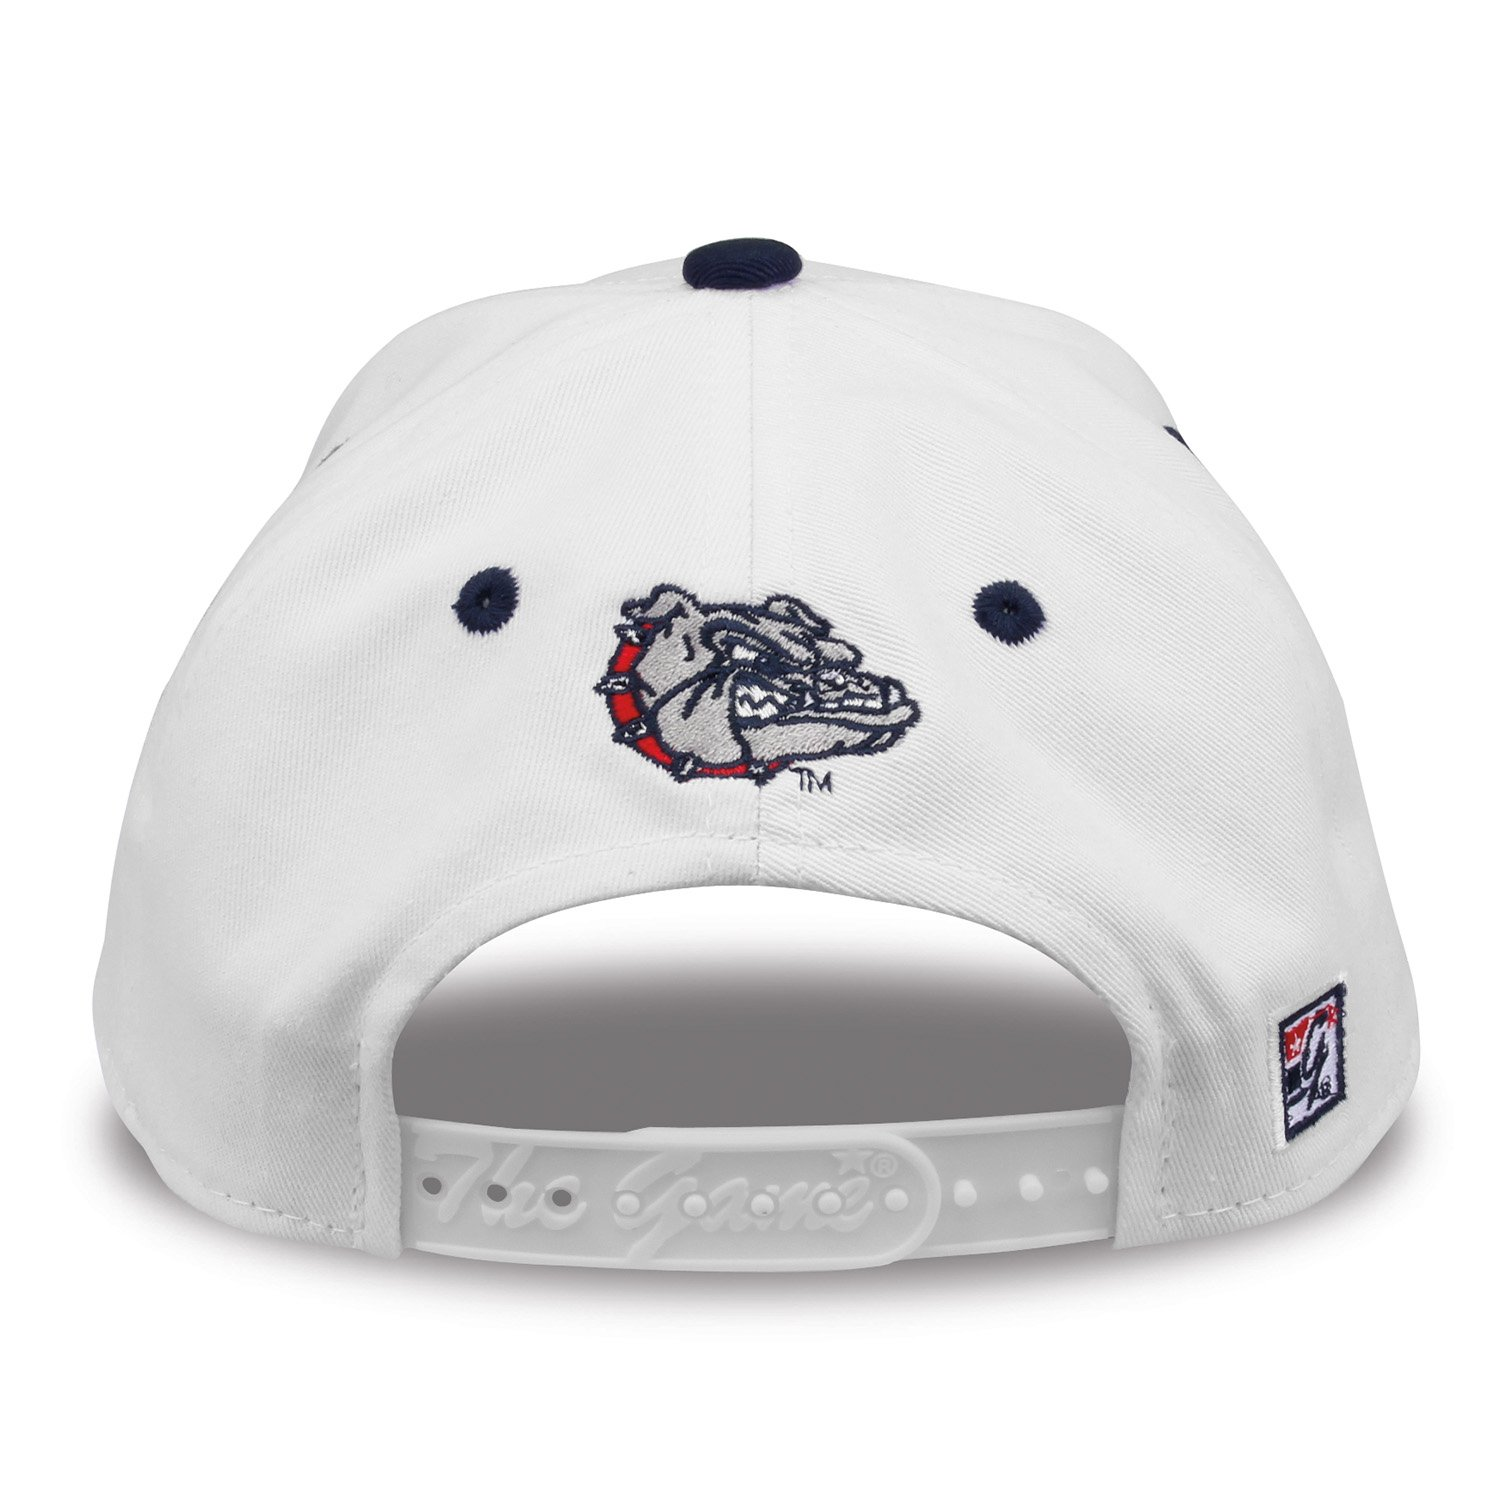 Adjustable The Game NCAA Air Force Falcons Unisex NCAA bar Design Hat White